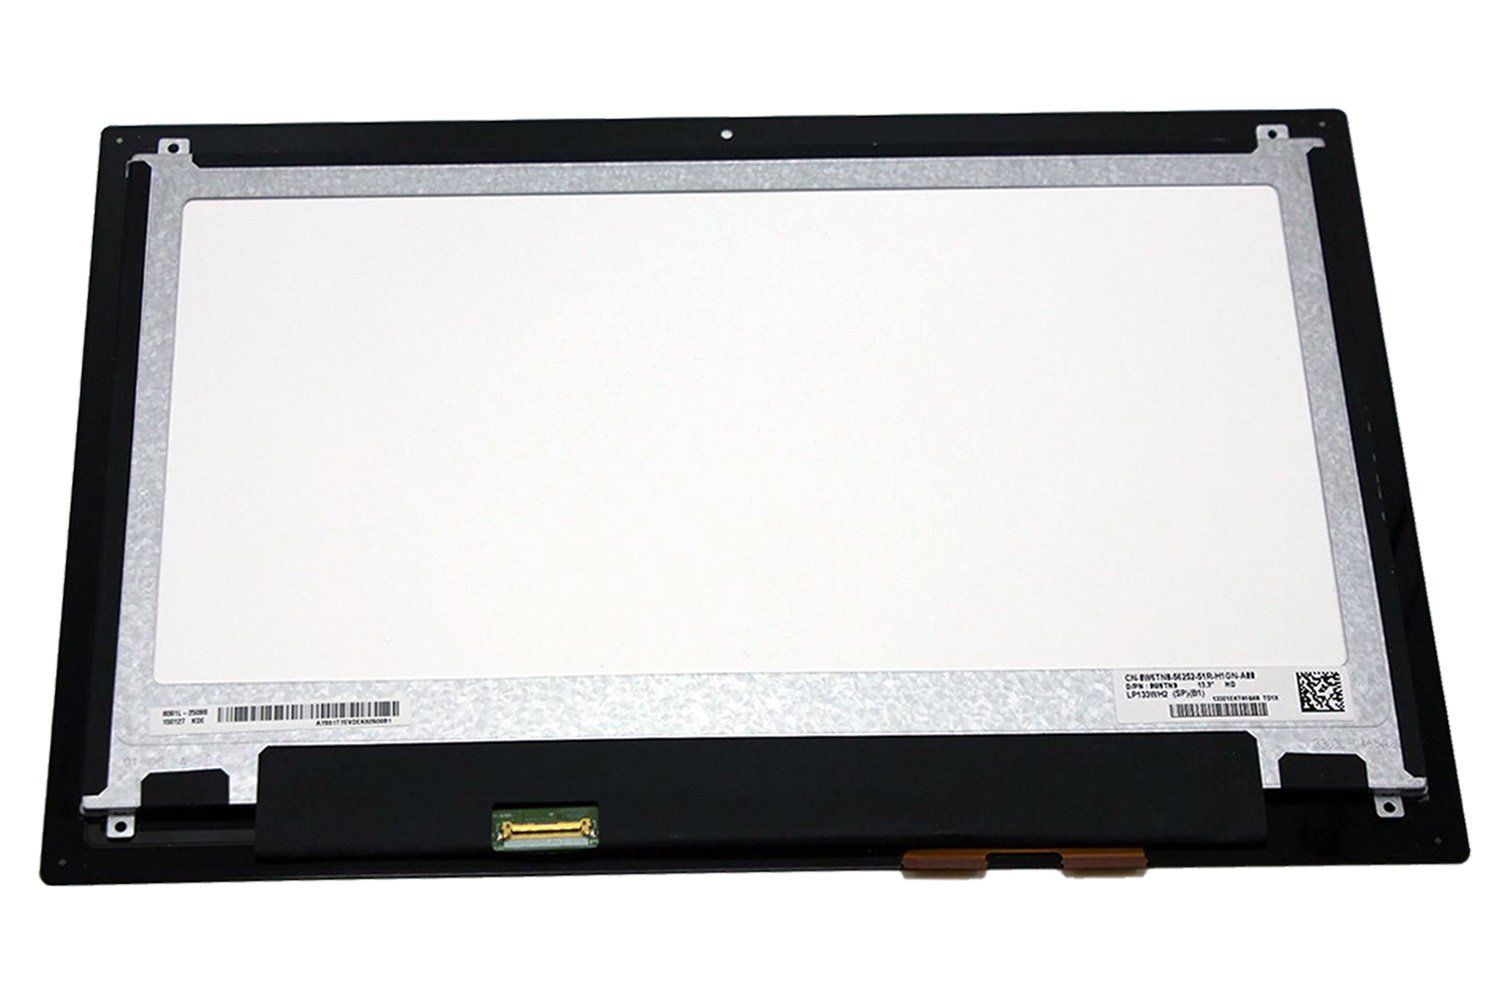 13.3 LED Display Assembly For Dell Inspiron 13 7000 7347 LP133WH2-SPB1 Touch Digitizer LCD Screen13.3 LED Display Assembly For Dell Inspiron 13 7000 7347 LP133WH2-SPB1 Touch Digitizer LCD Screen